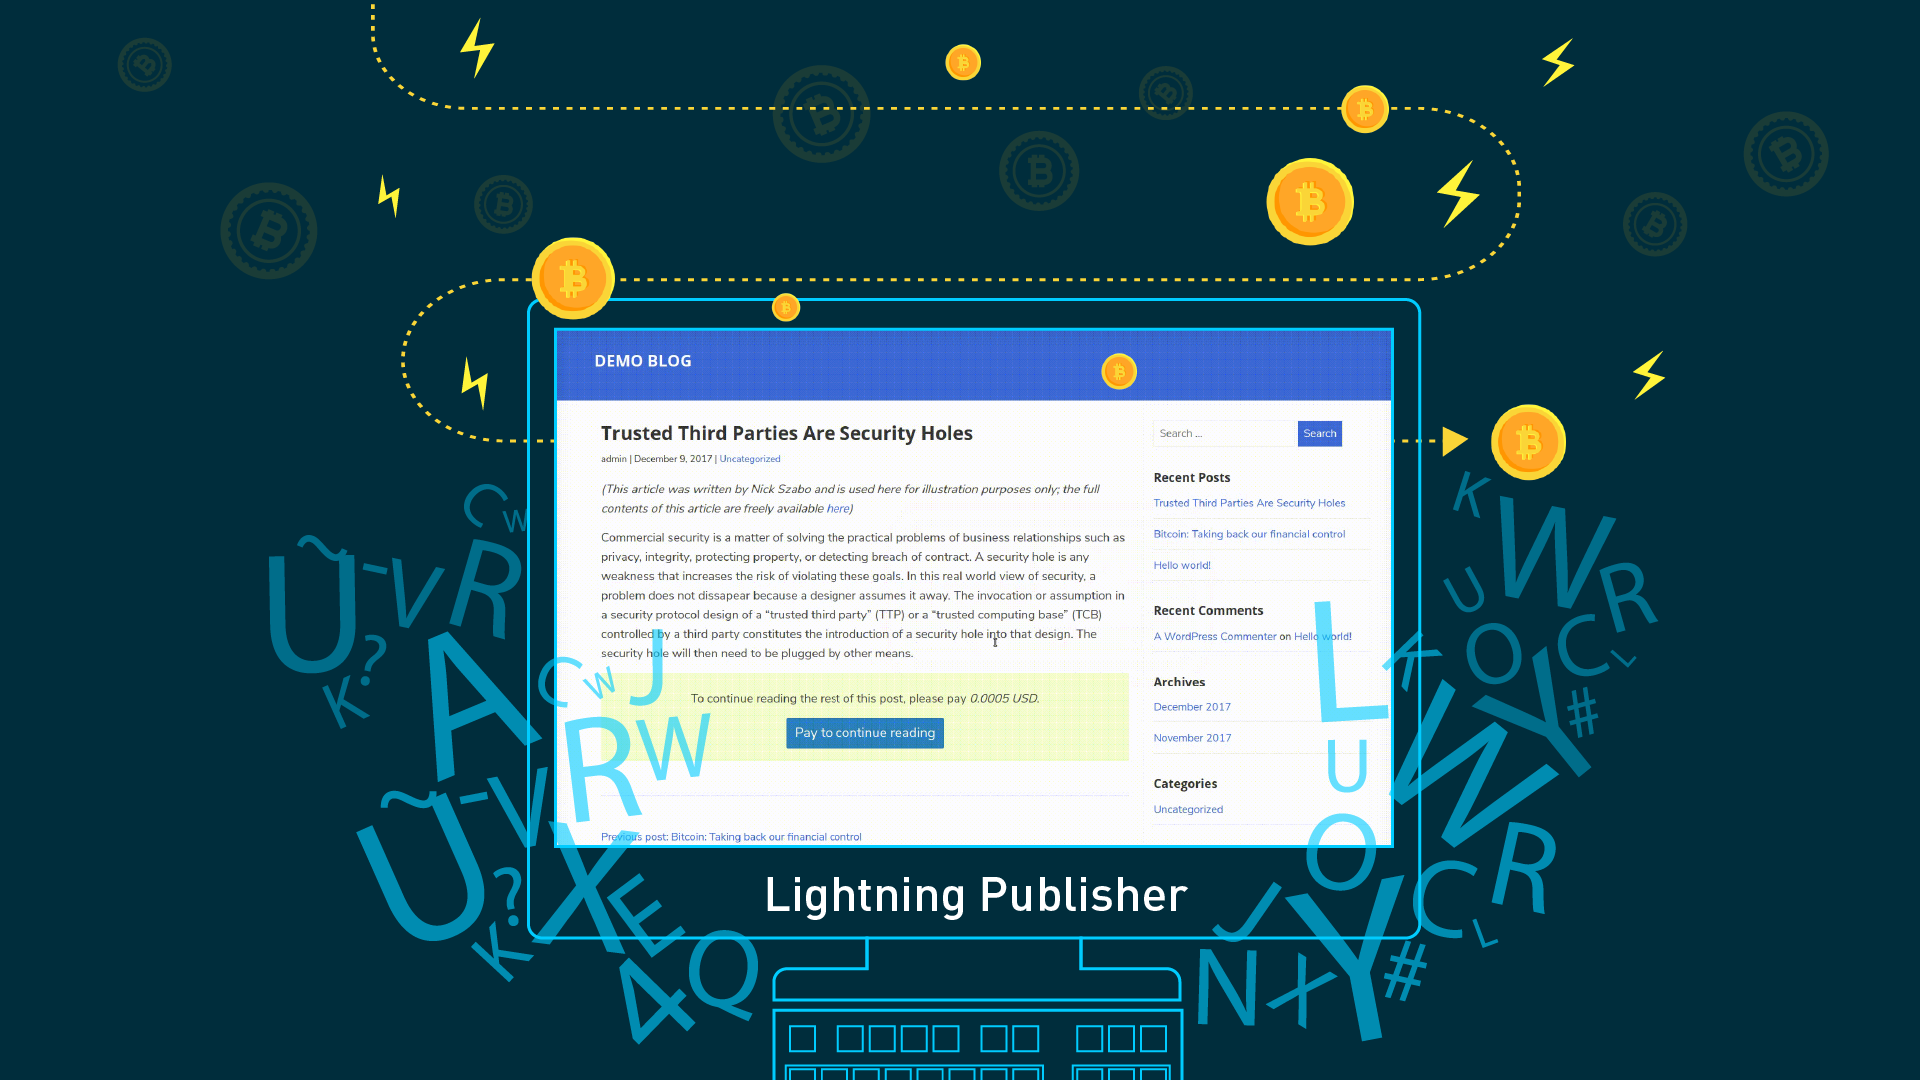 lightning-publisher-banner